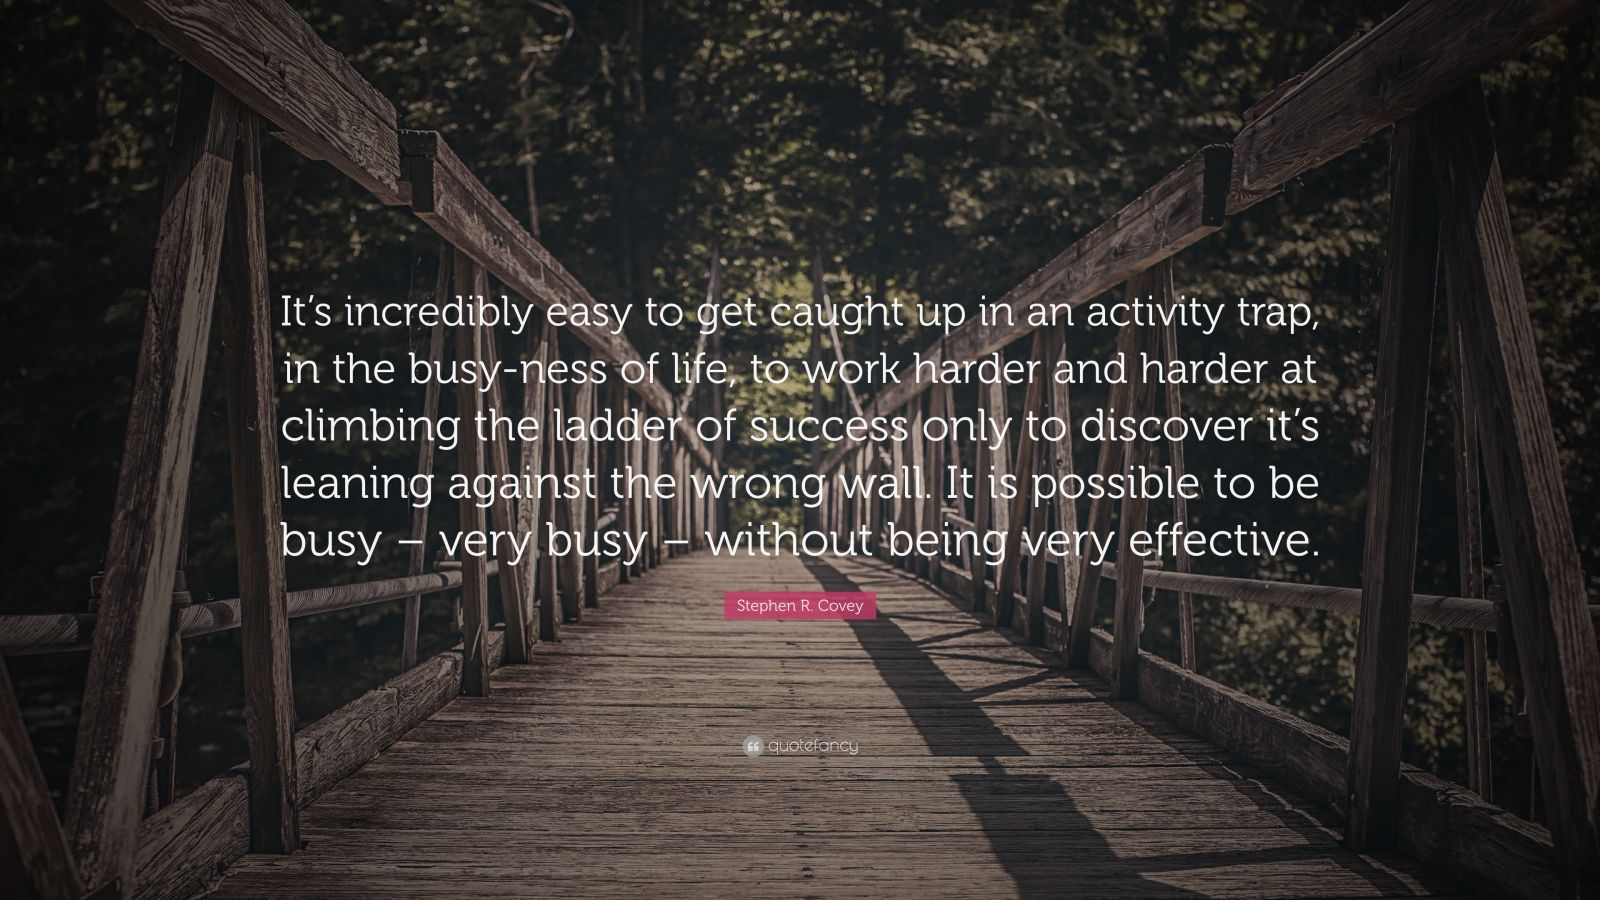 """Stephen R. Covey Quote: """"It's incredibly easy to get caught up in an activity trap, in the busy-ness of life, to work harder and harder at climbing the ladder of success only to discover it's leaning against the wrong wall. It is possible to be busy – very busy – without being very effective."""""""